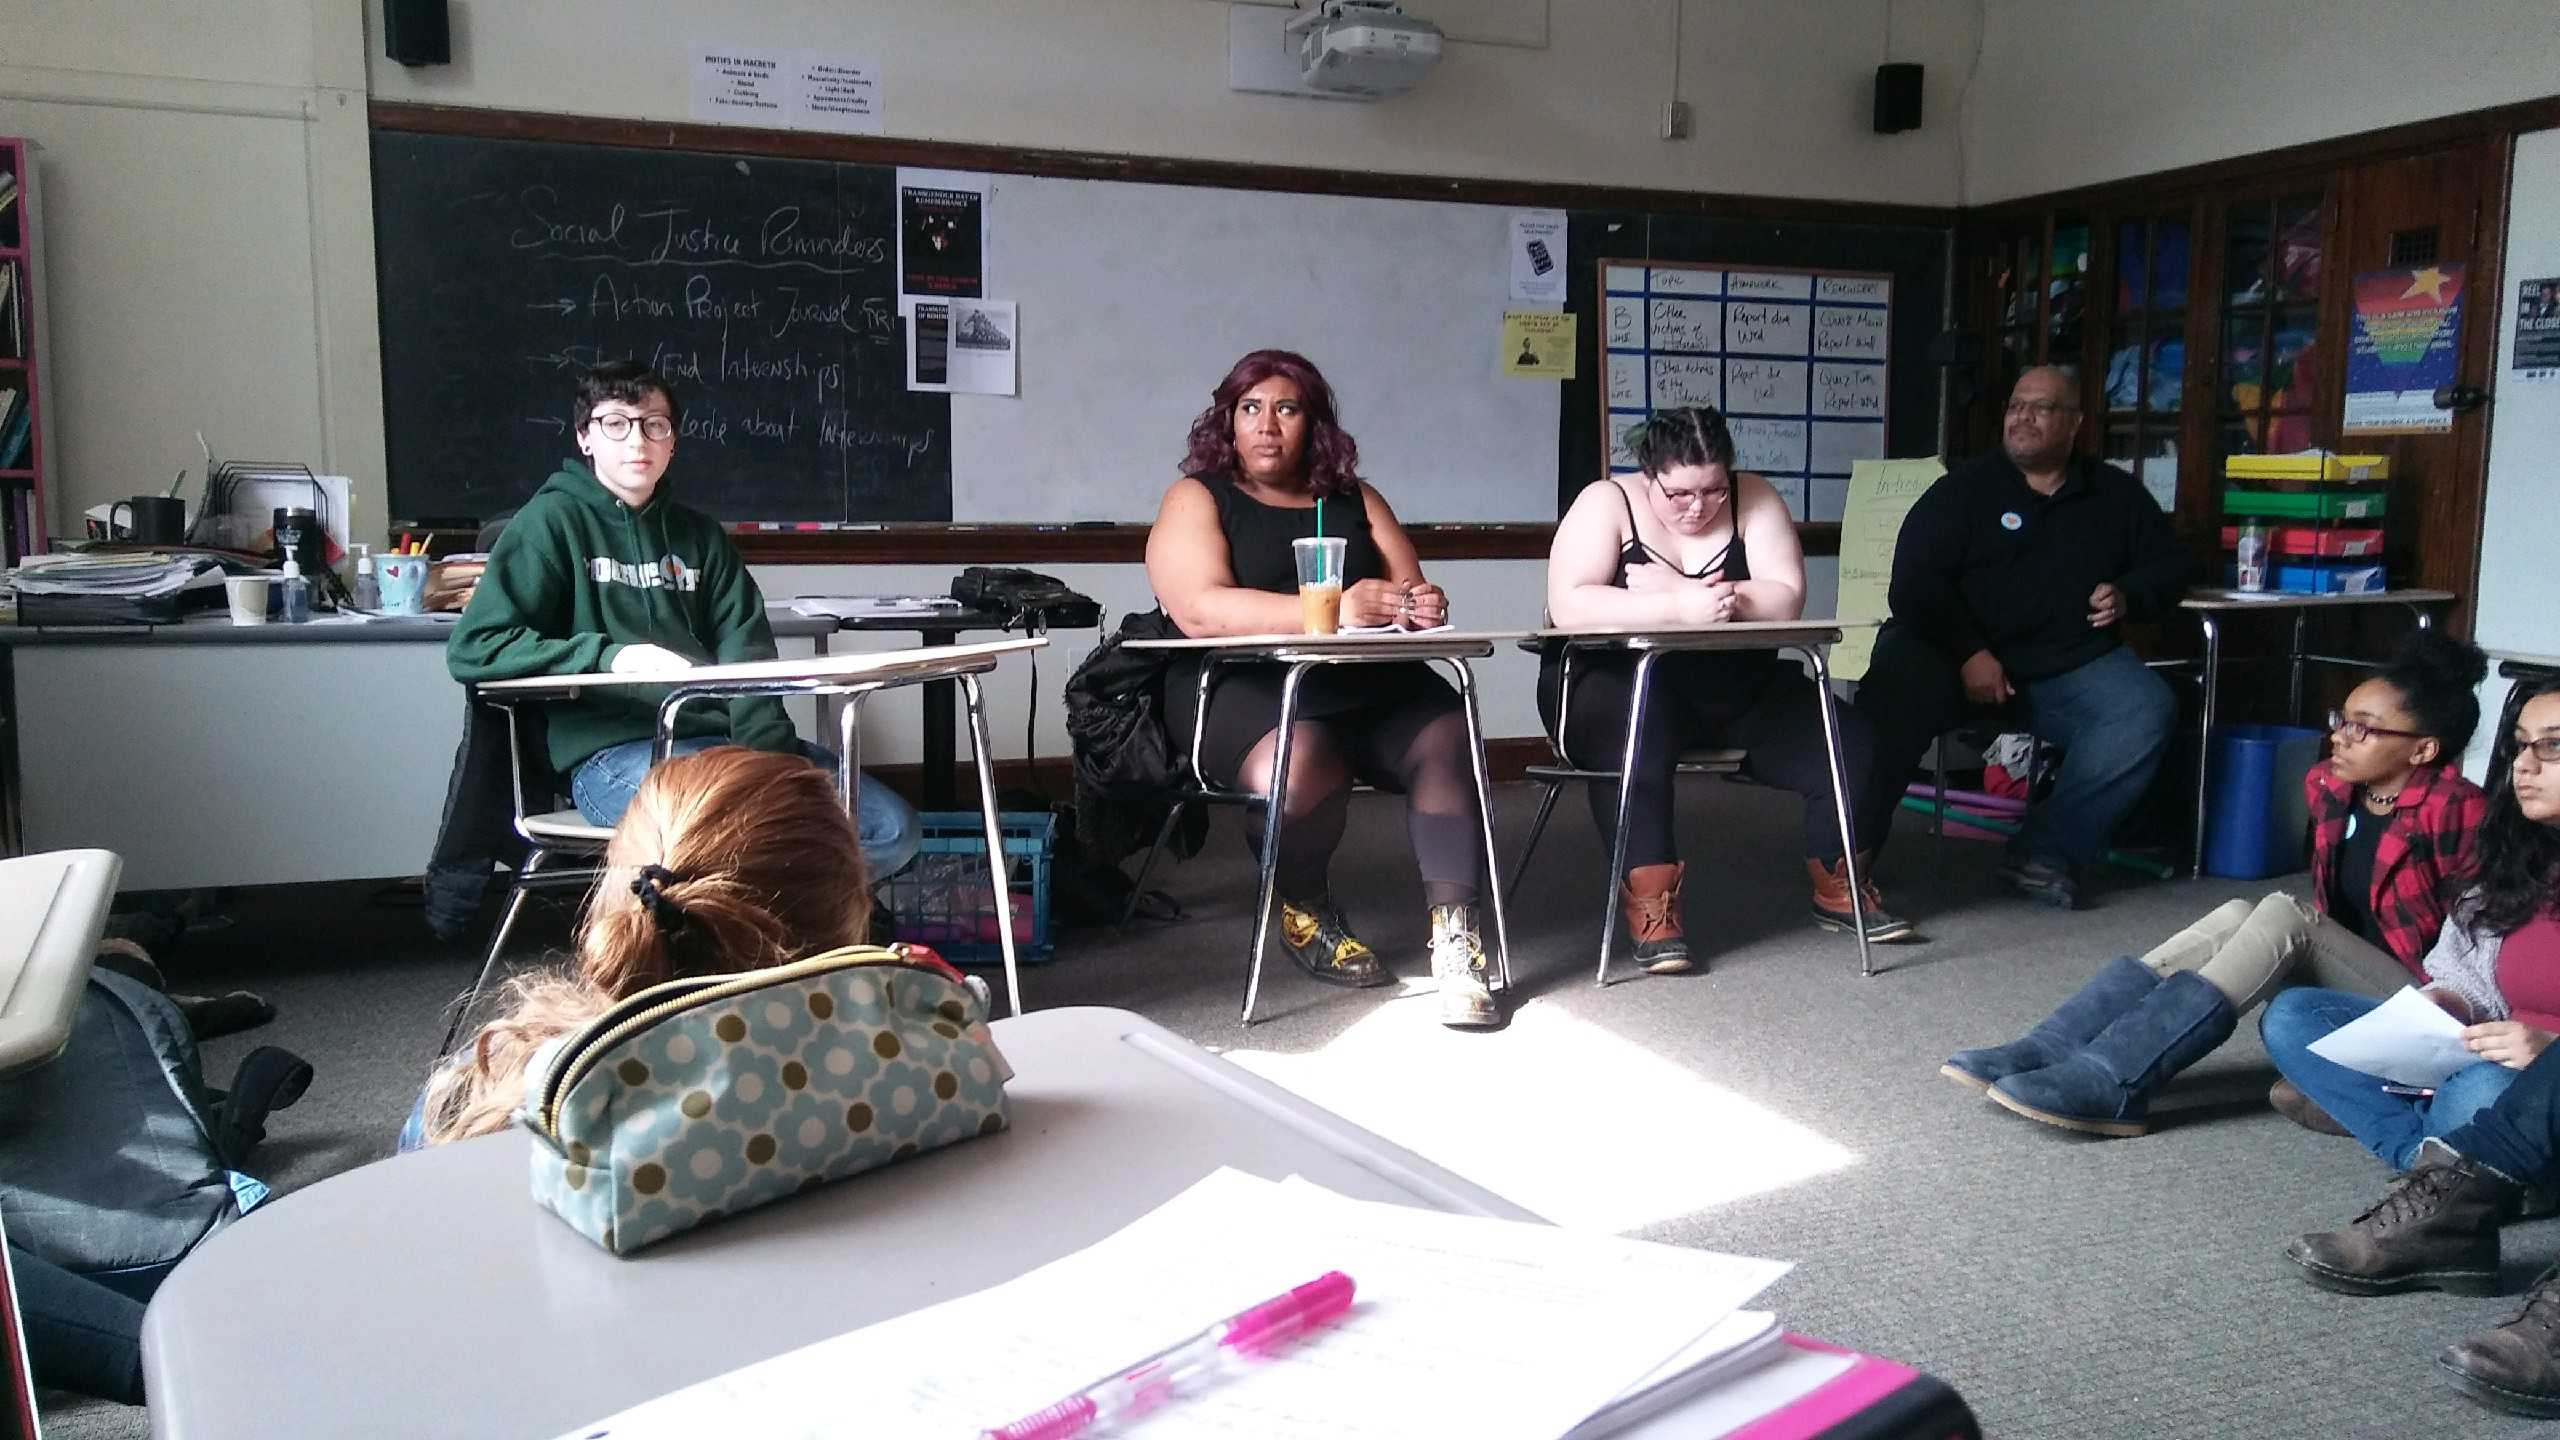 G-Block speaker London addresses students in Room 309 about her experiences as a transgender woman.